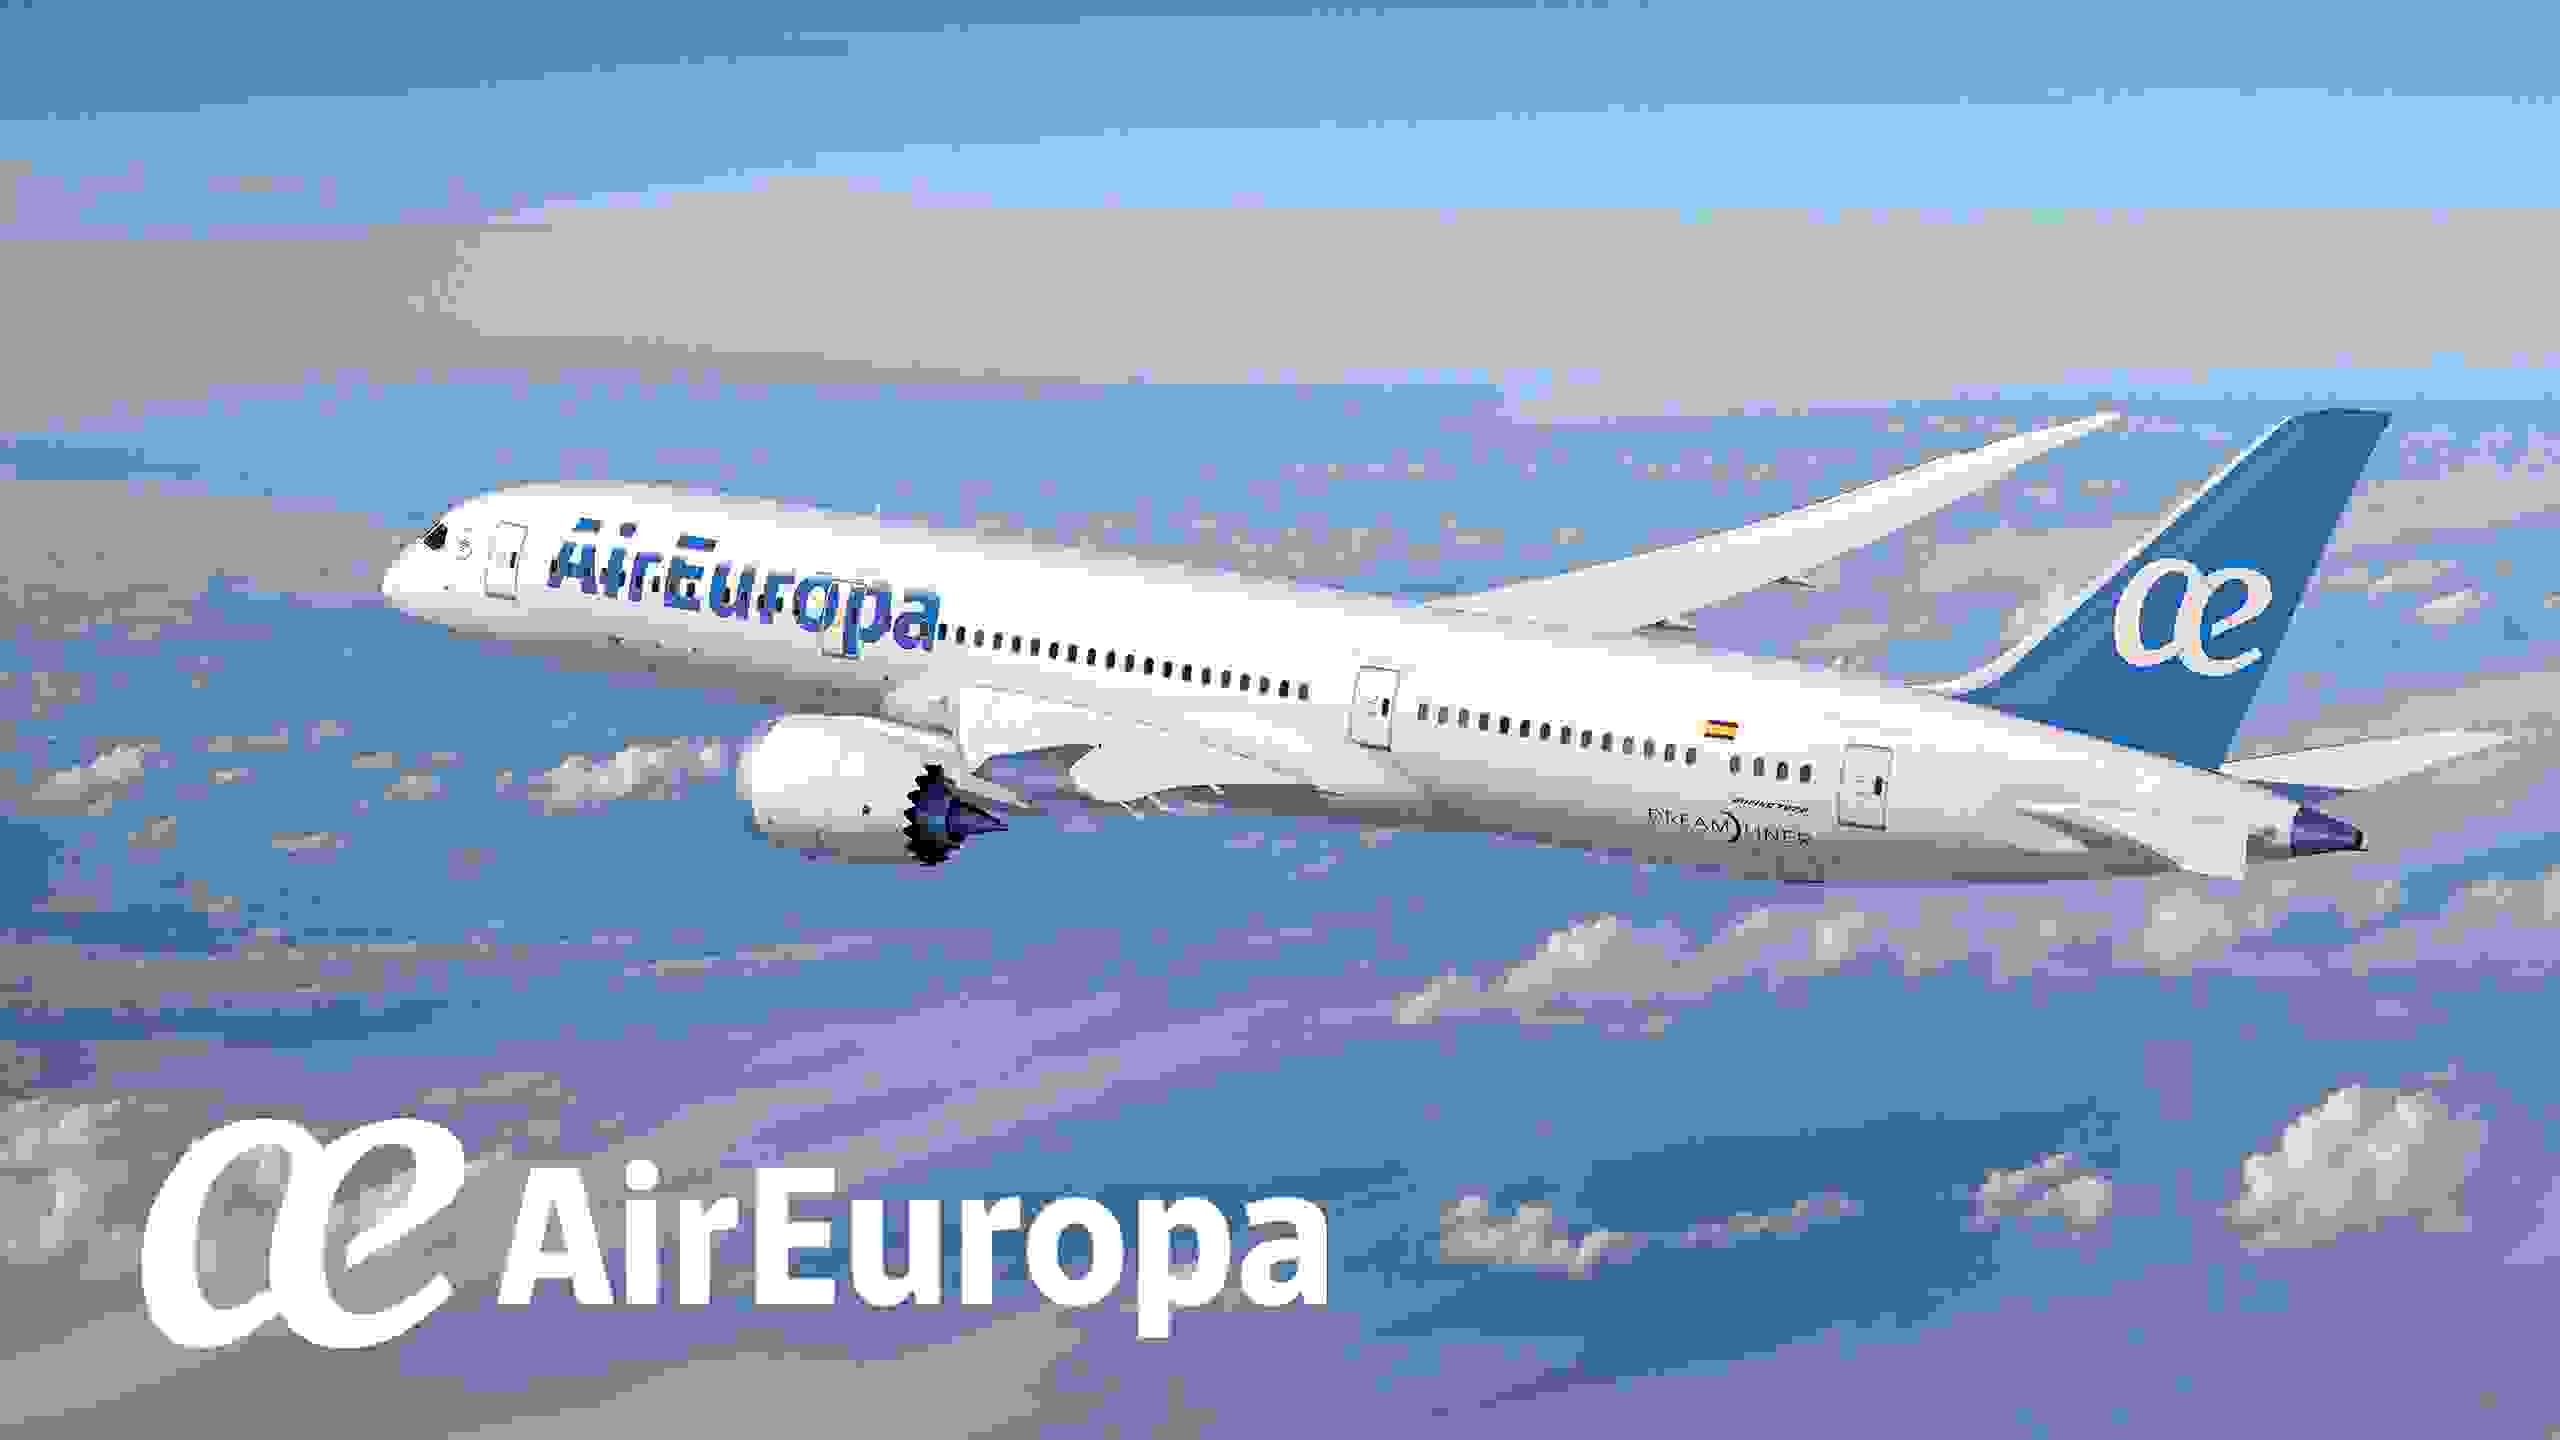 Codeshare Air Europa & Ethiopian Airlines